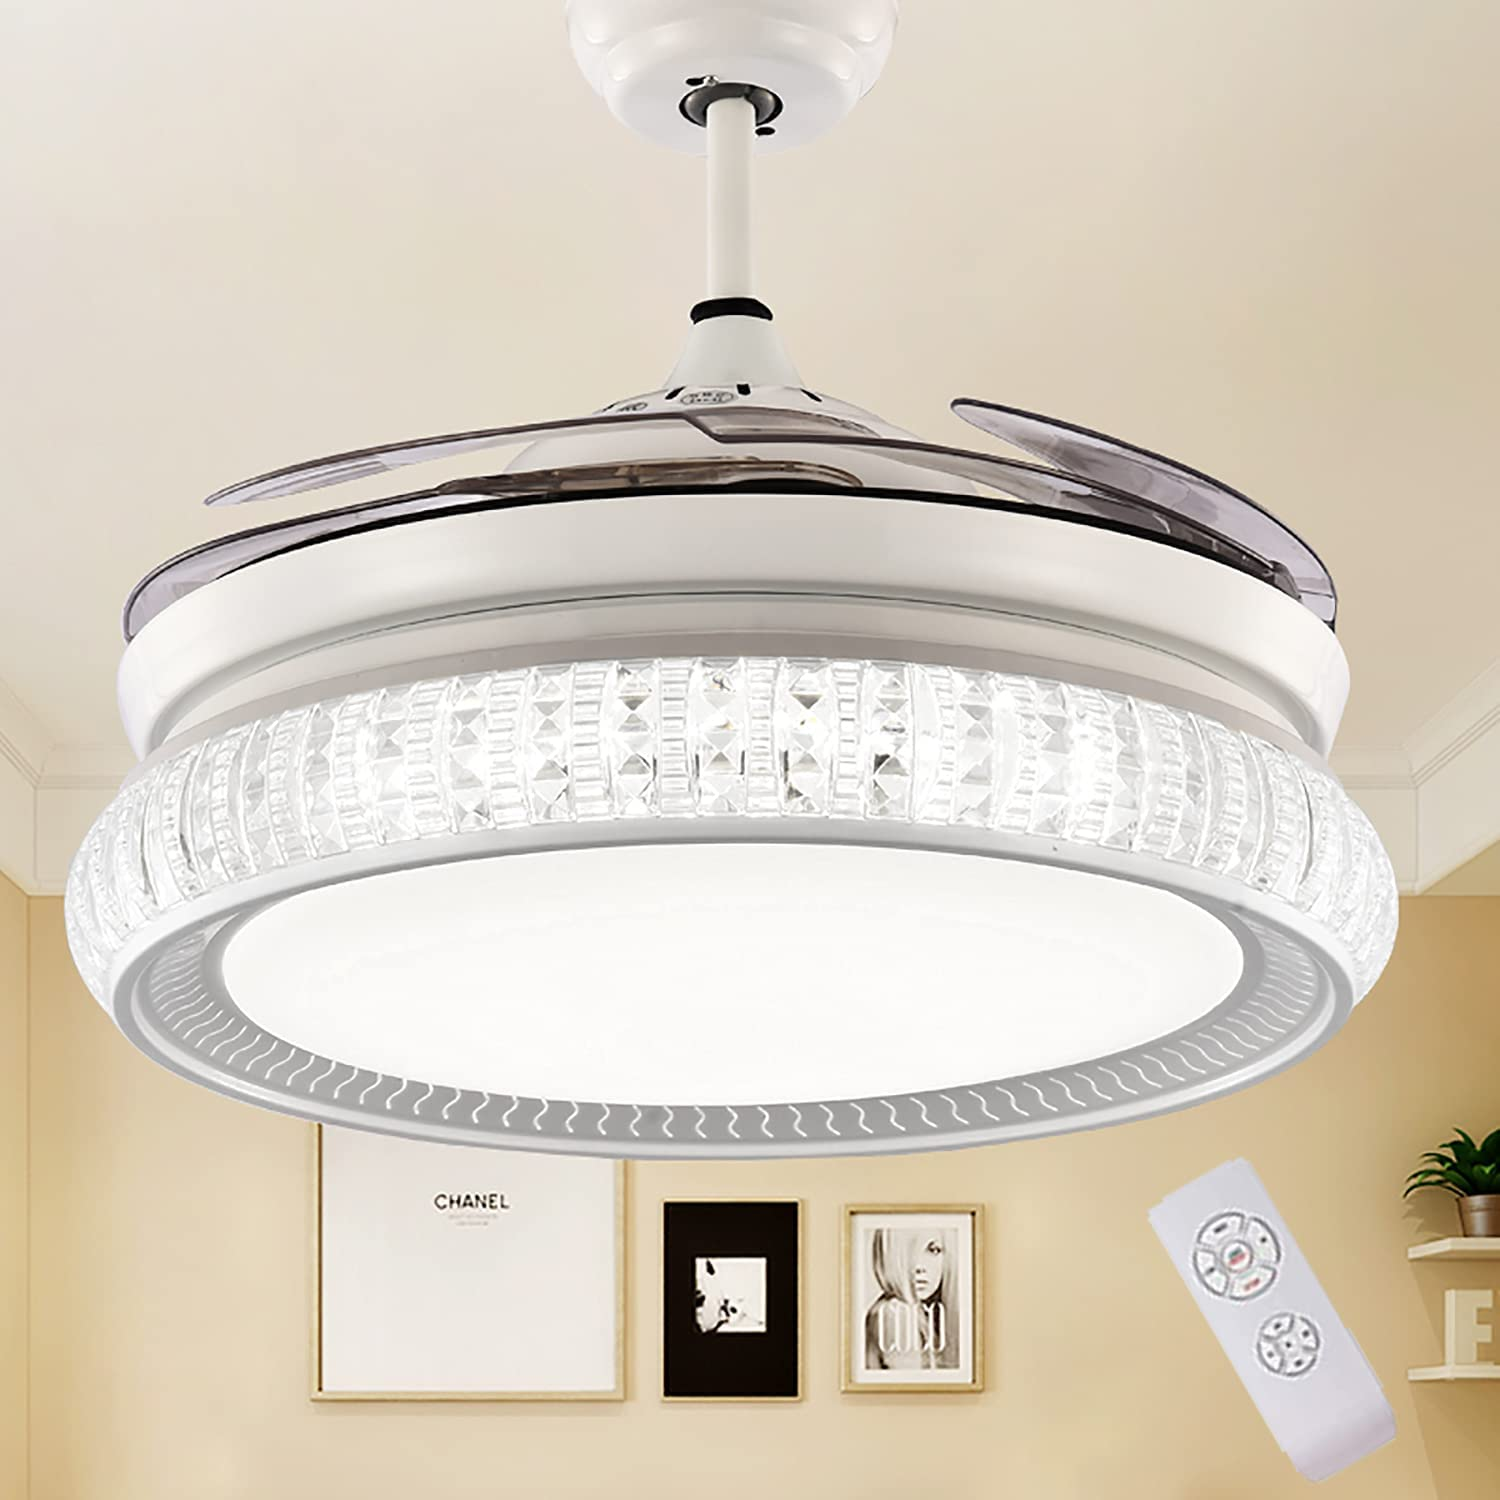 Iammix 35% Credence OFF 42in Modern Crystal Ceiling Remote with Lights Contro Fan